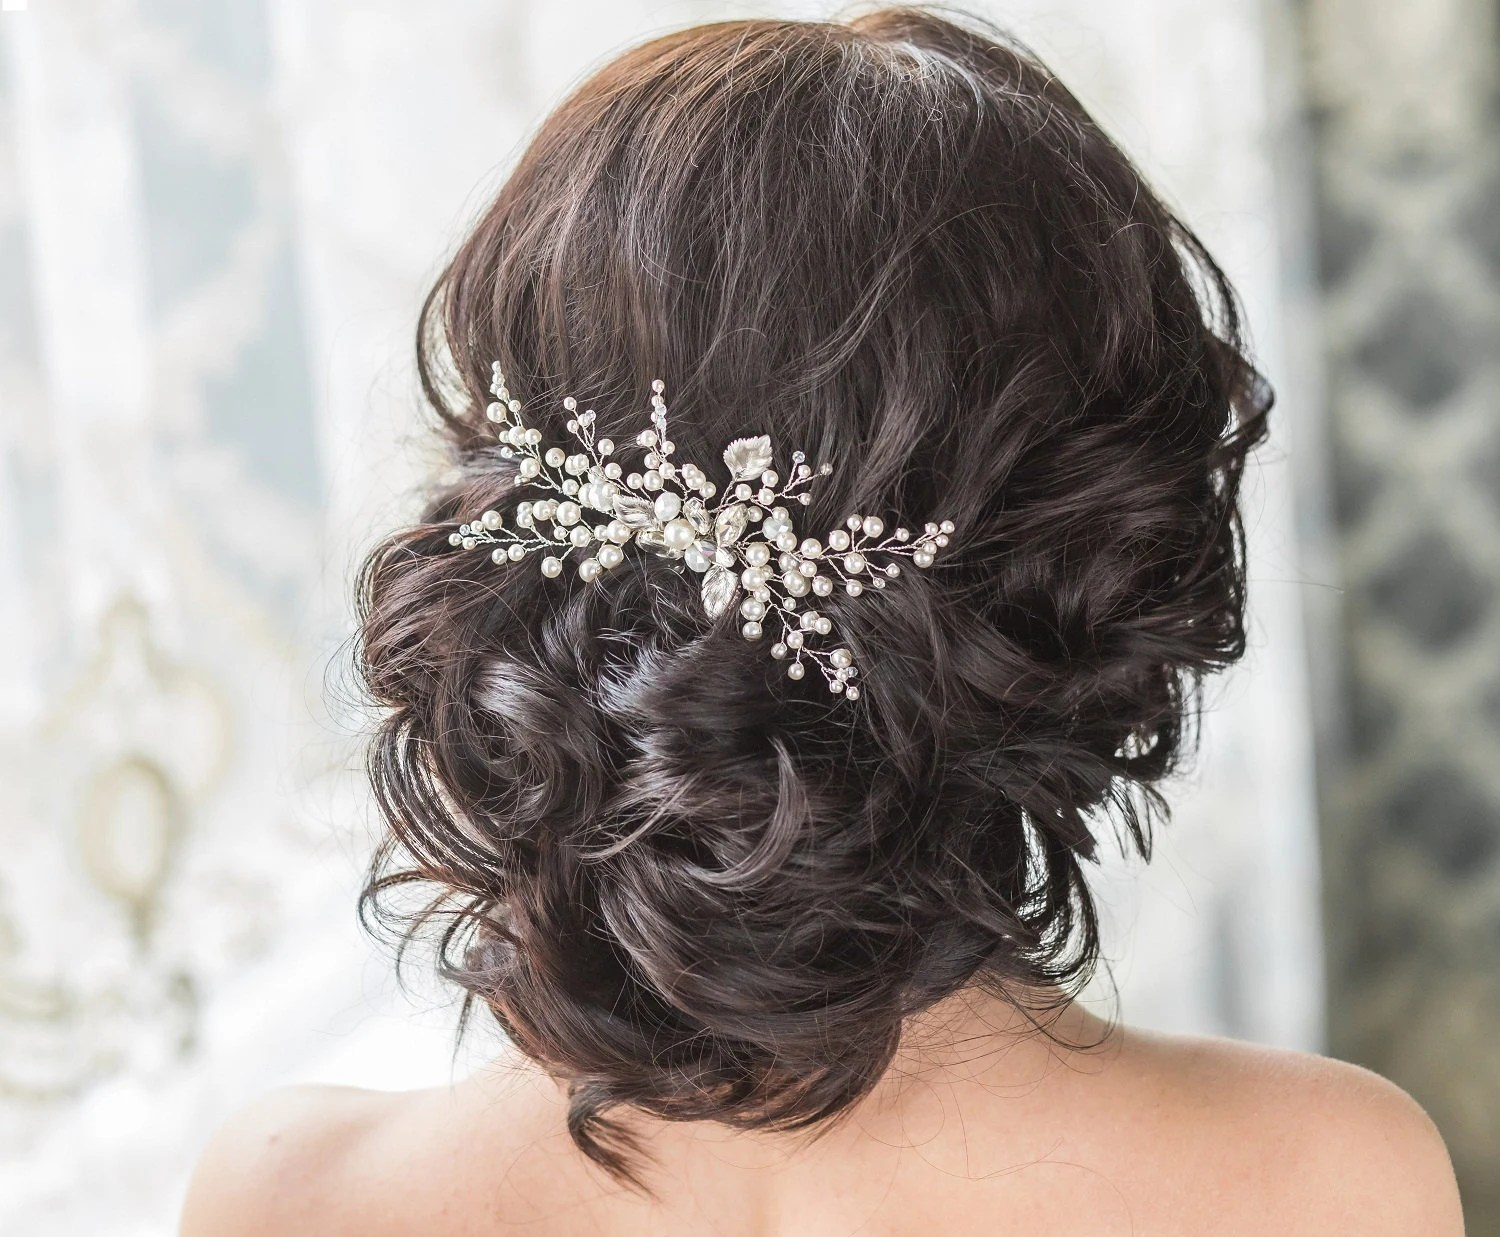 emerald hair comb hair pieces for wedding Bridal Hair Comb with Swarovski Pearls Bridal Headpiece Bridal Hair Piece Leaf Hair Comb